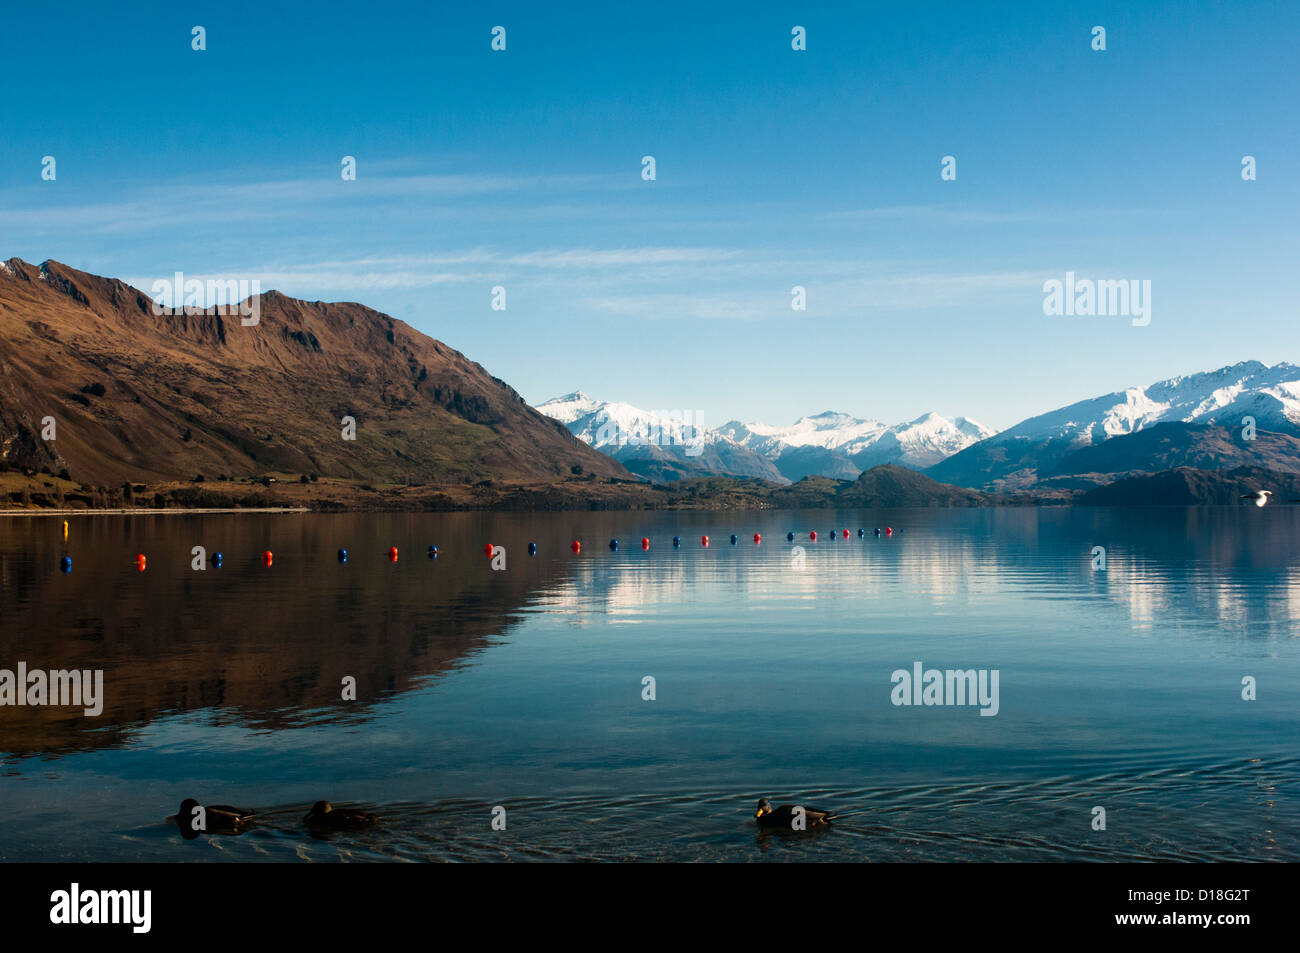 Mountains and sky reflected in lake Stock Photo